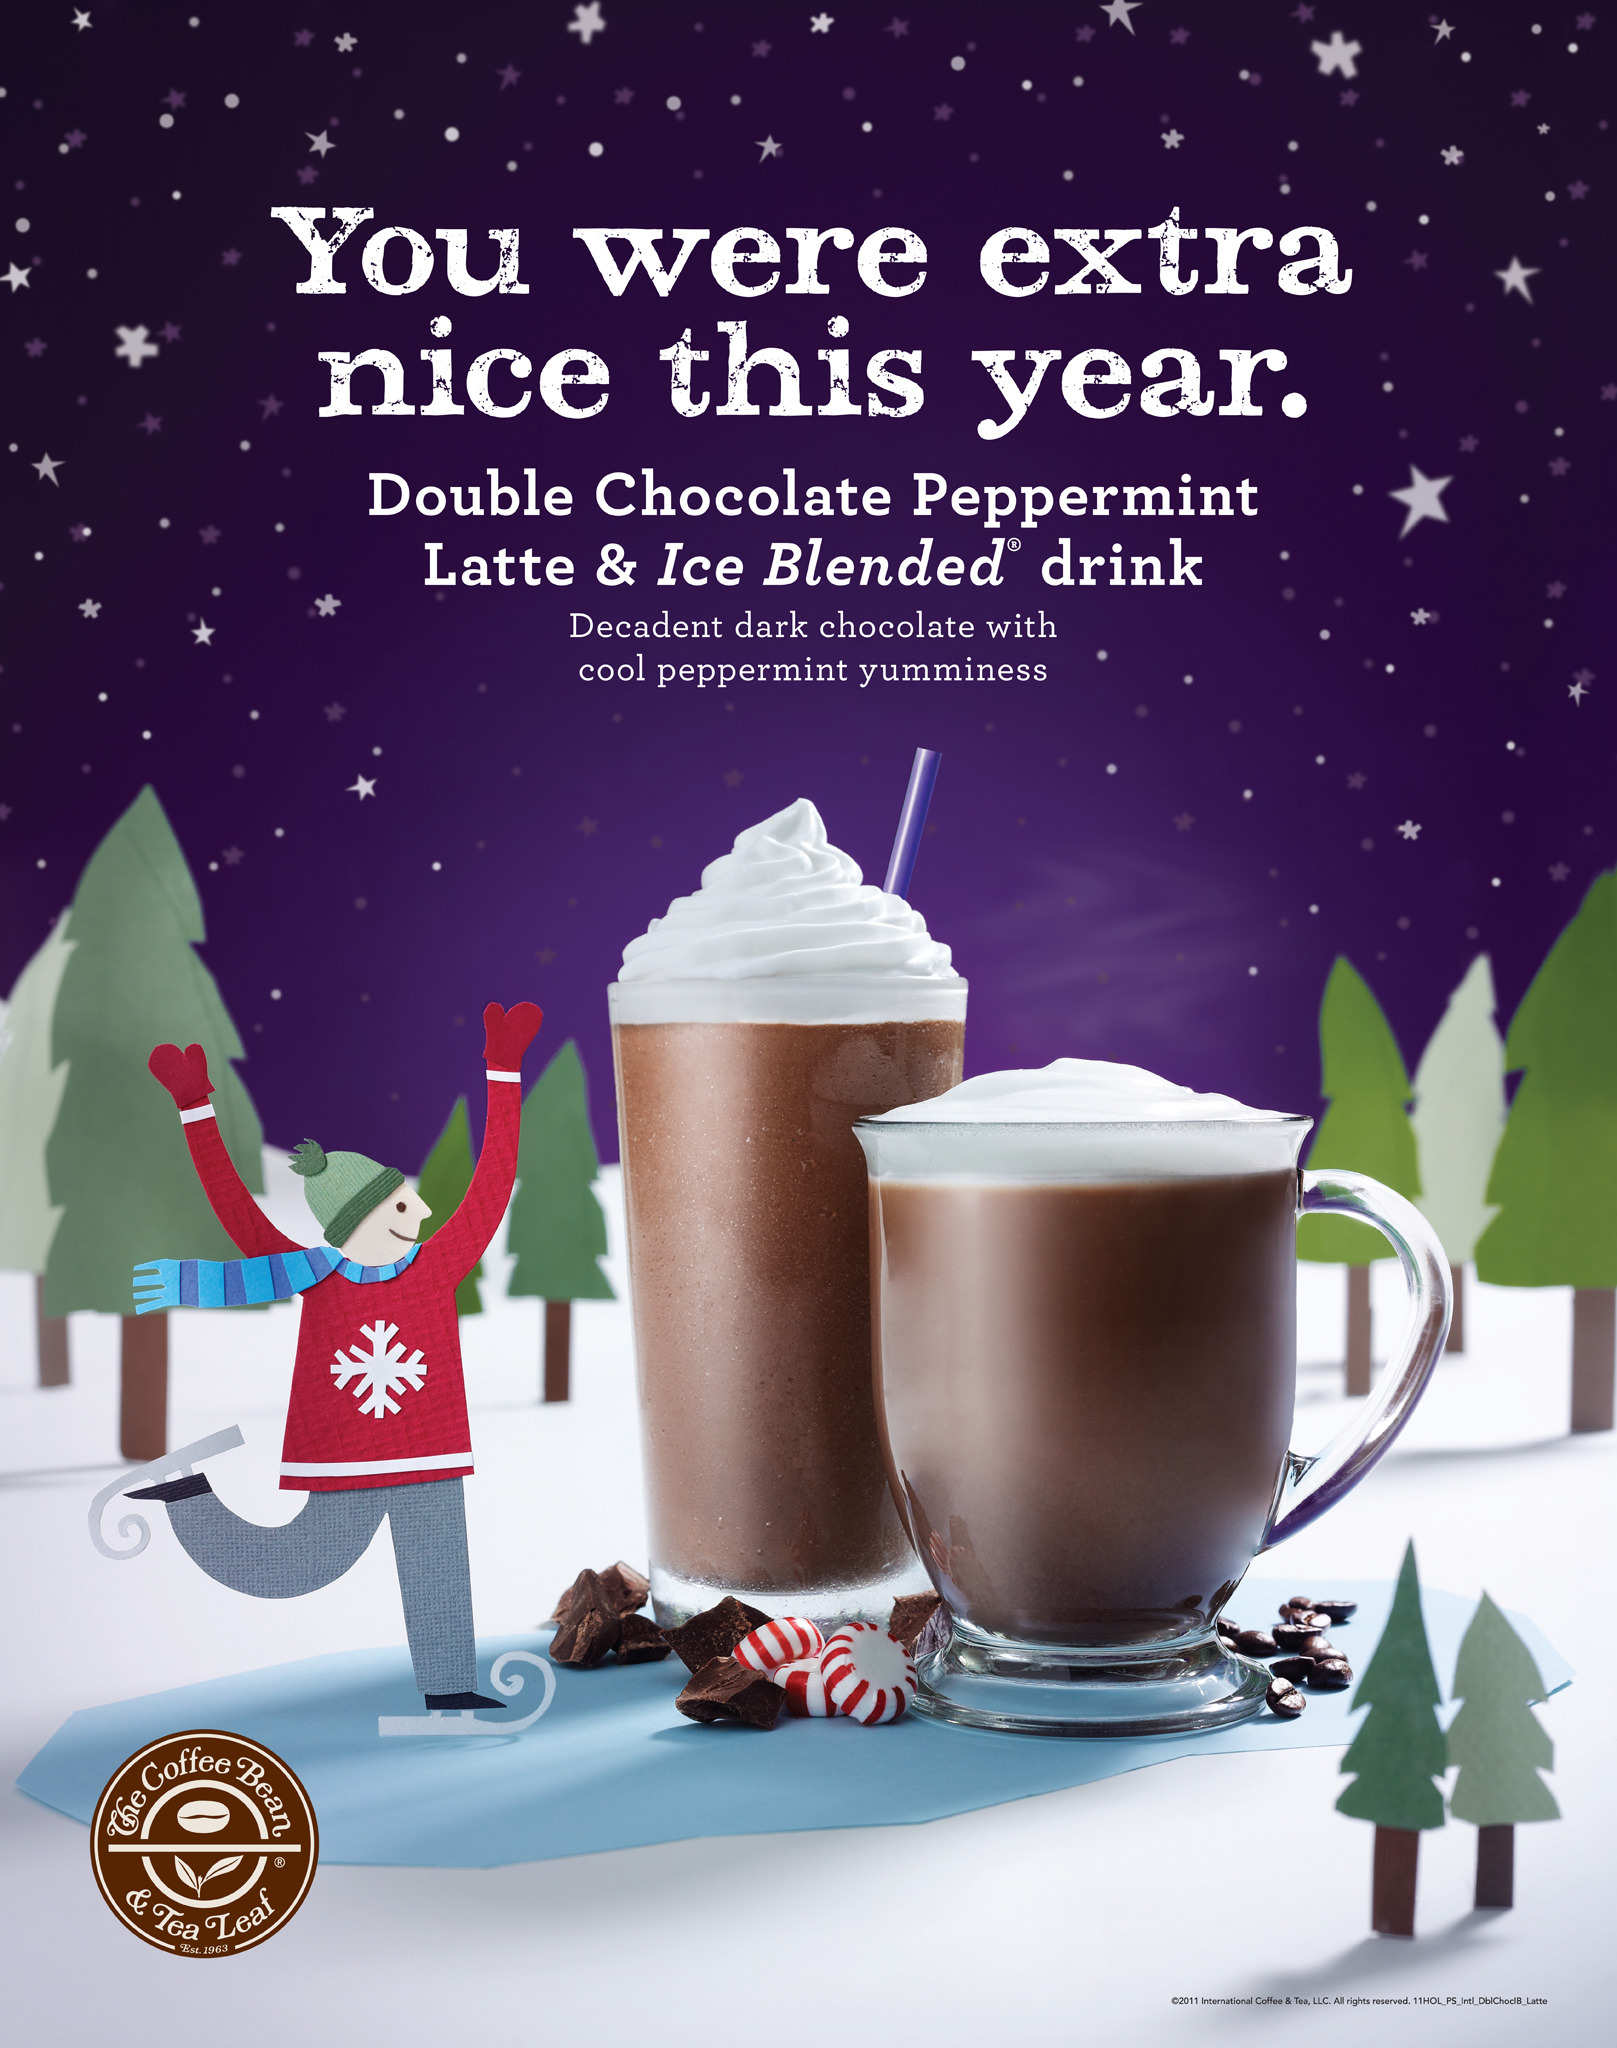 coffee bean and tea leaf holiday double chocolate peppermint in layout.jpg